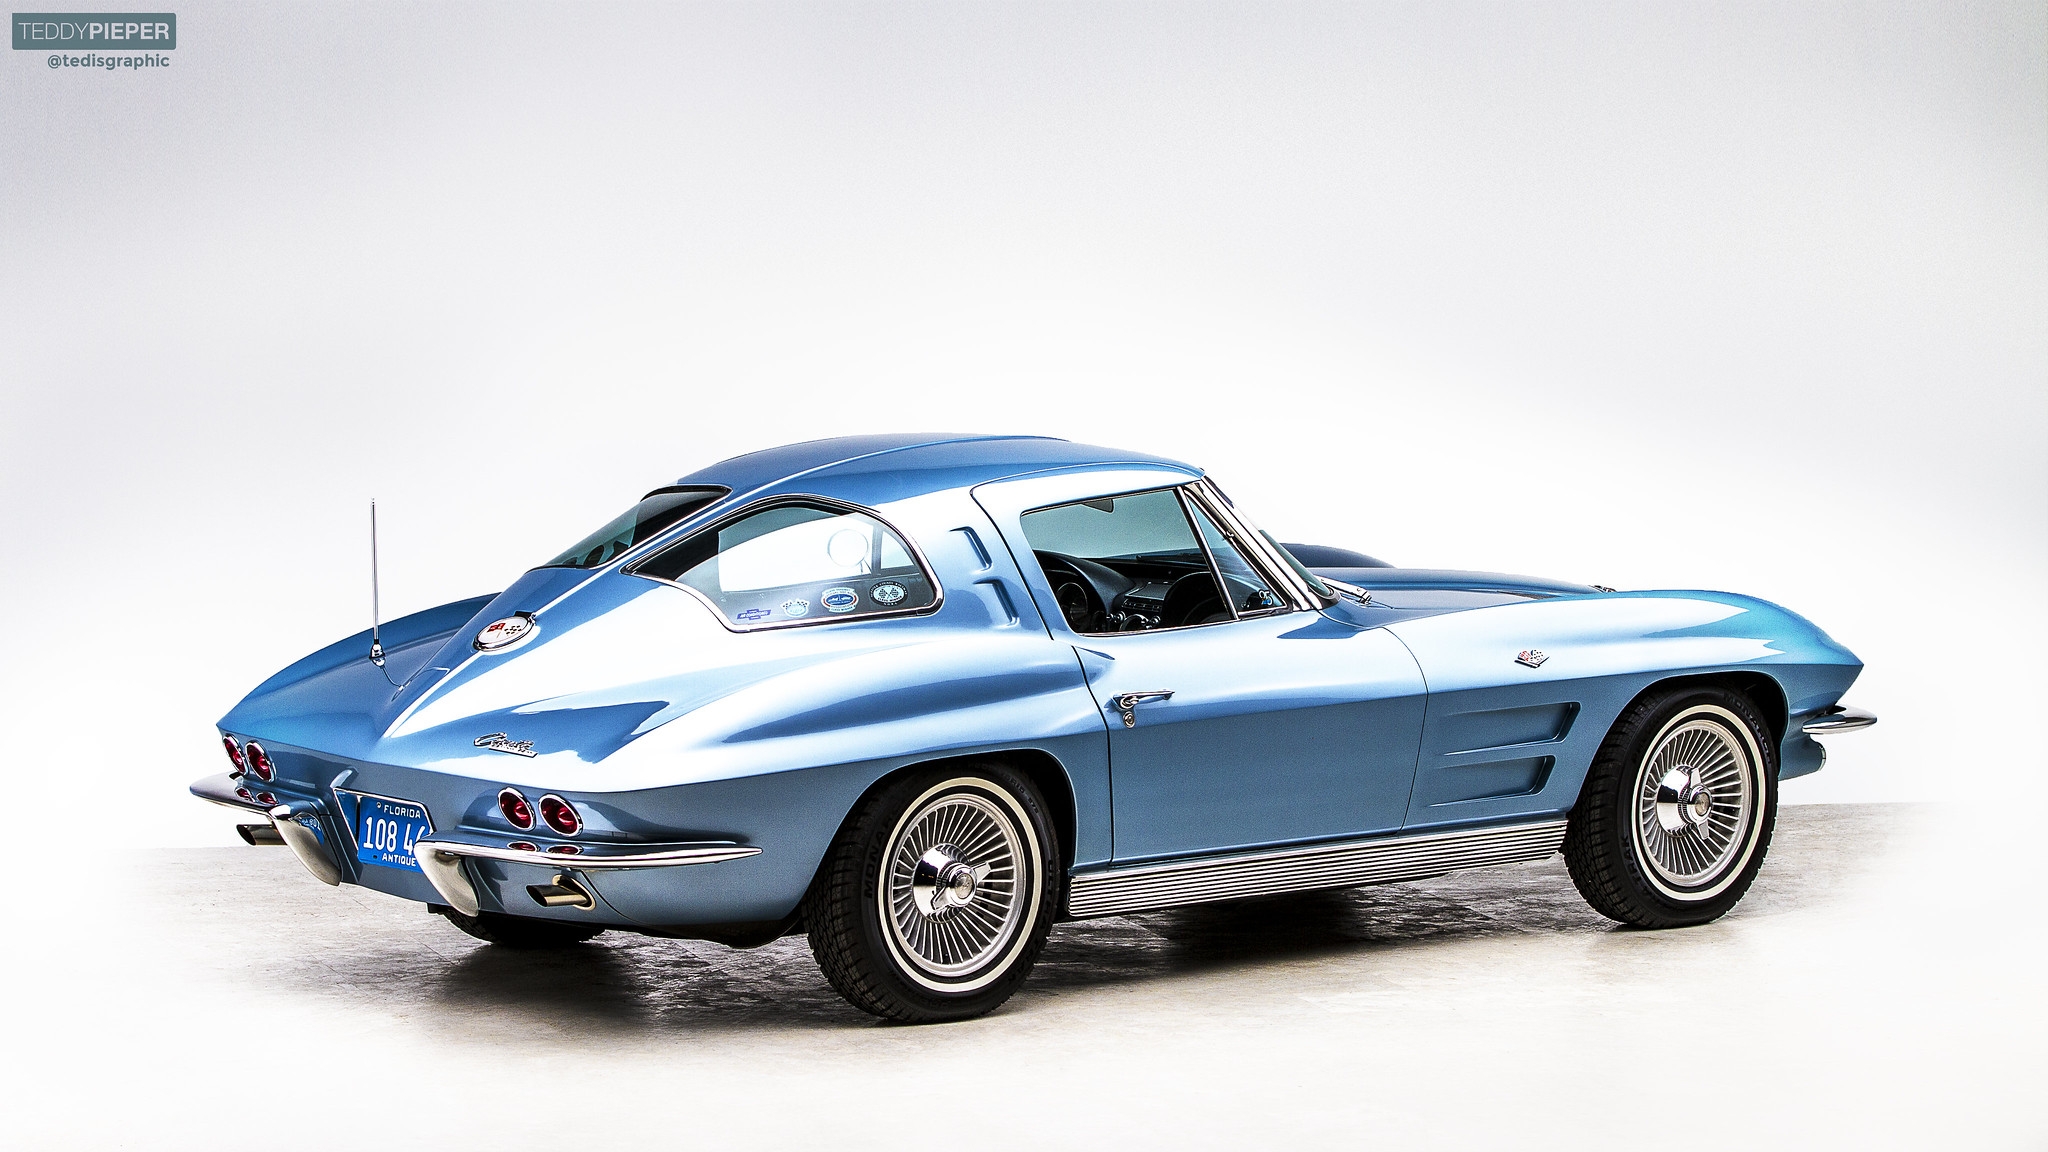 Split Window Corvette >> Another 63 'Split Window' | Teddy Pieper Photography & Design